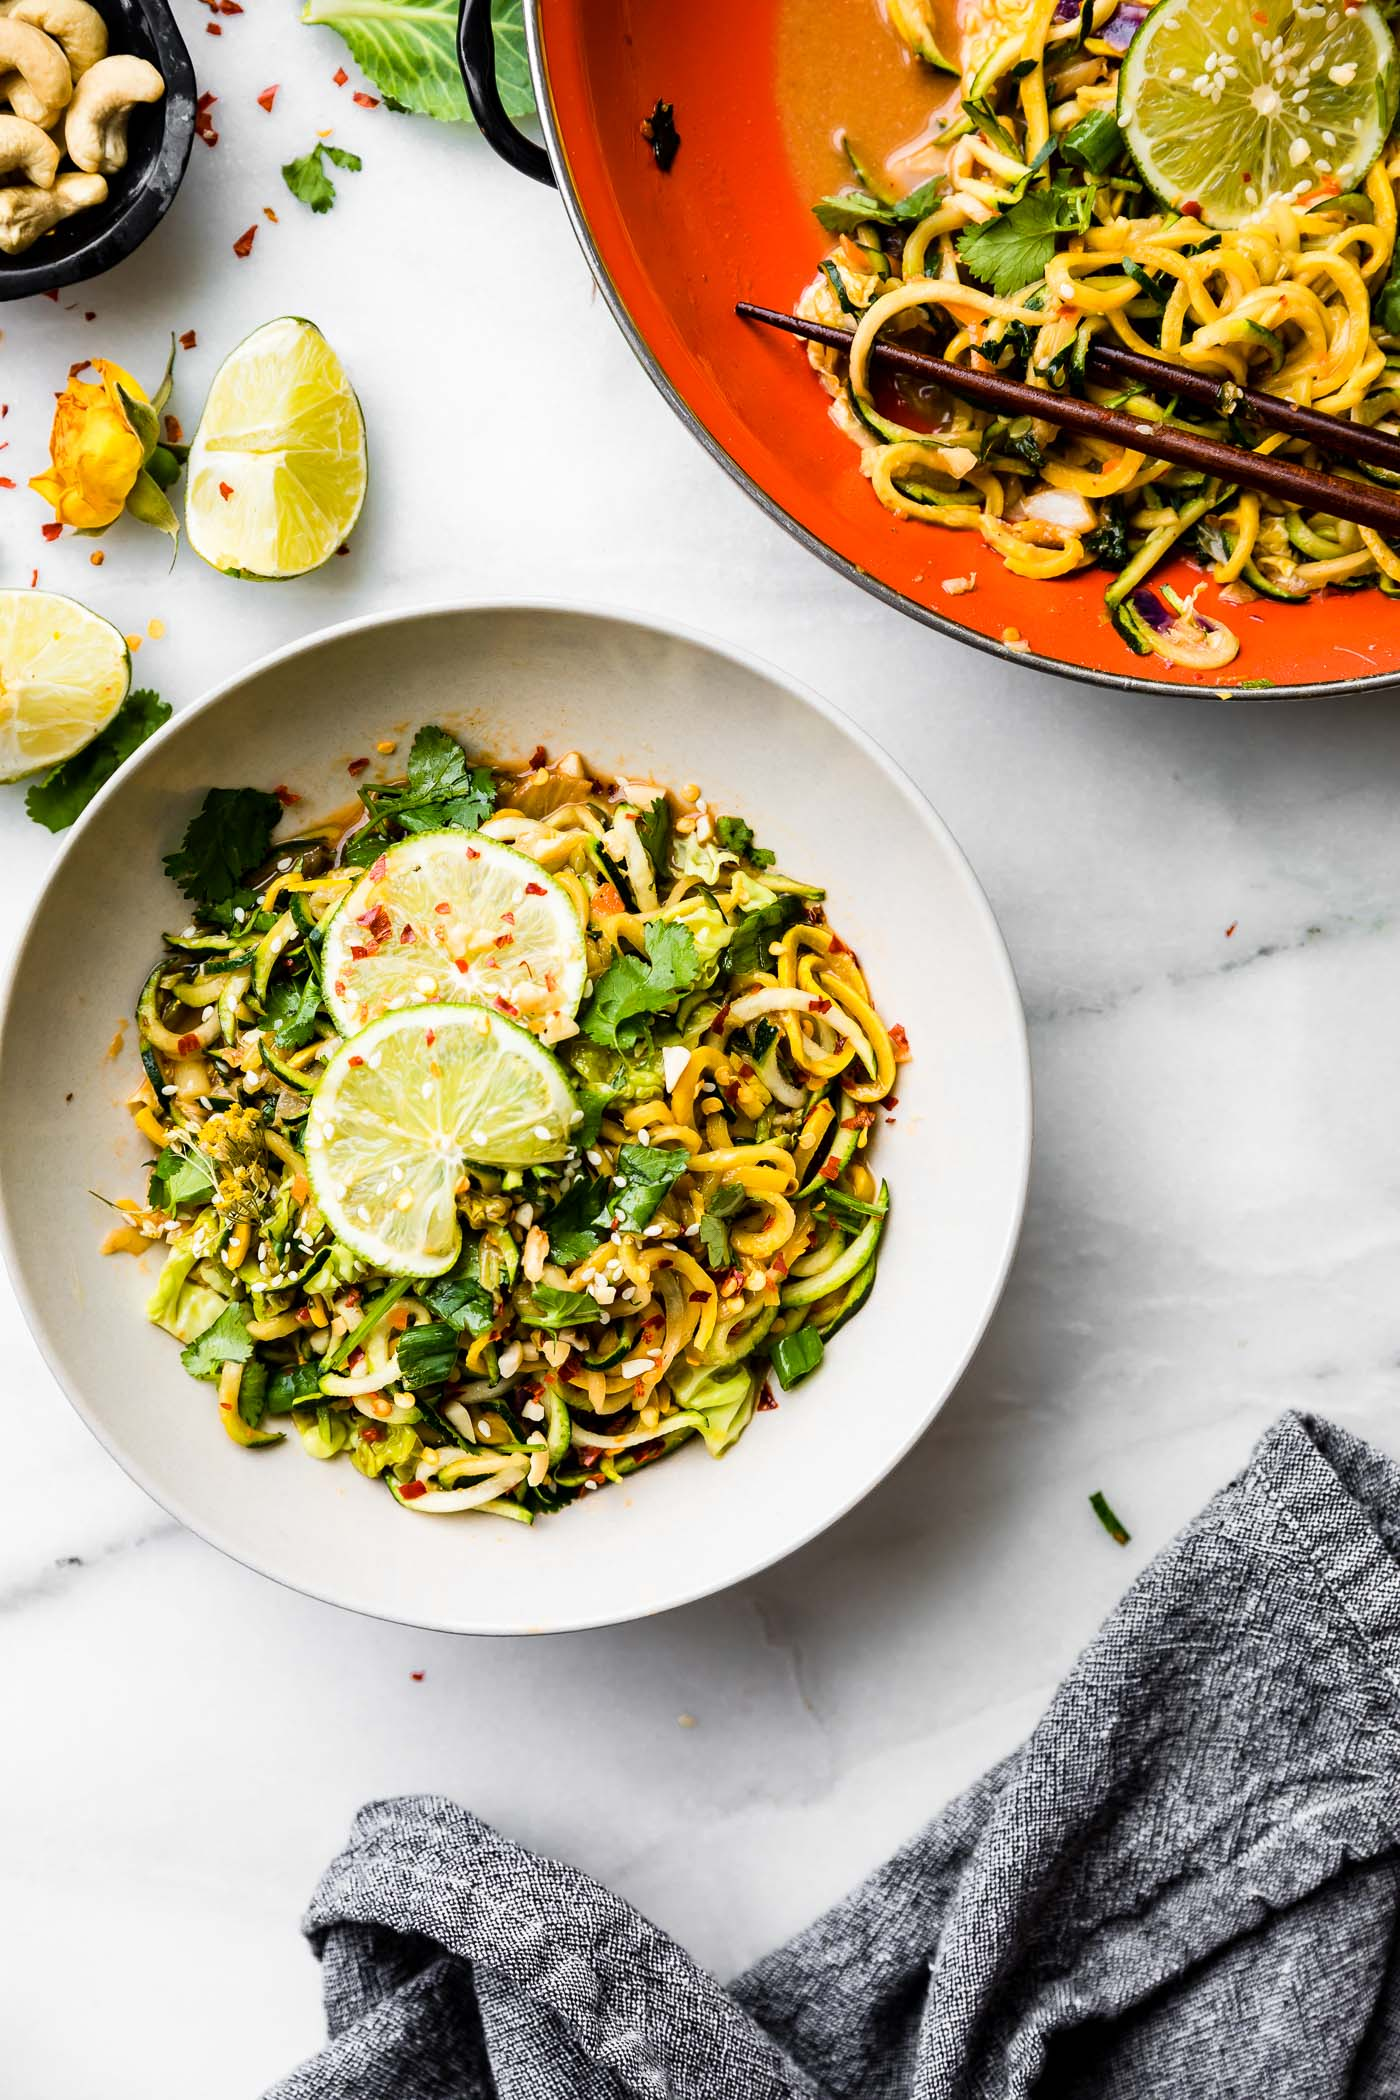 satay-style stir fry recipe with spiralized vegetables